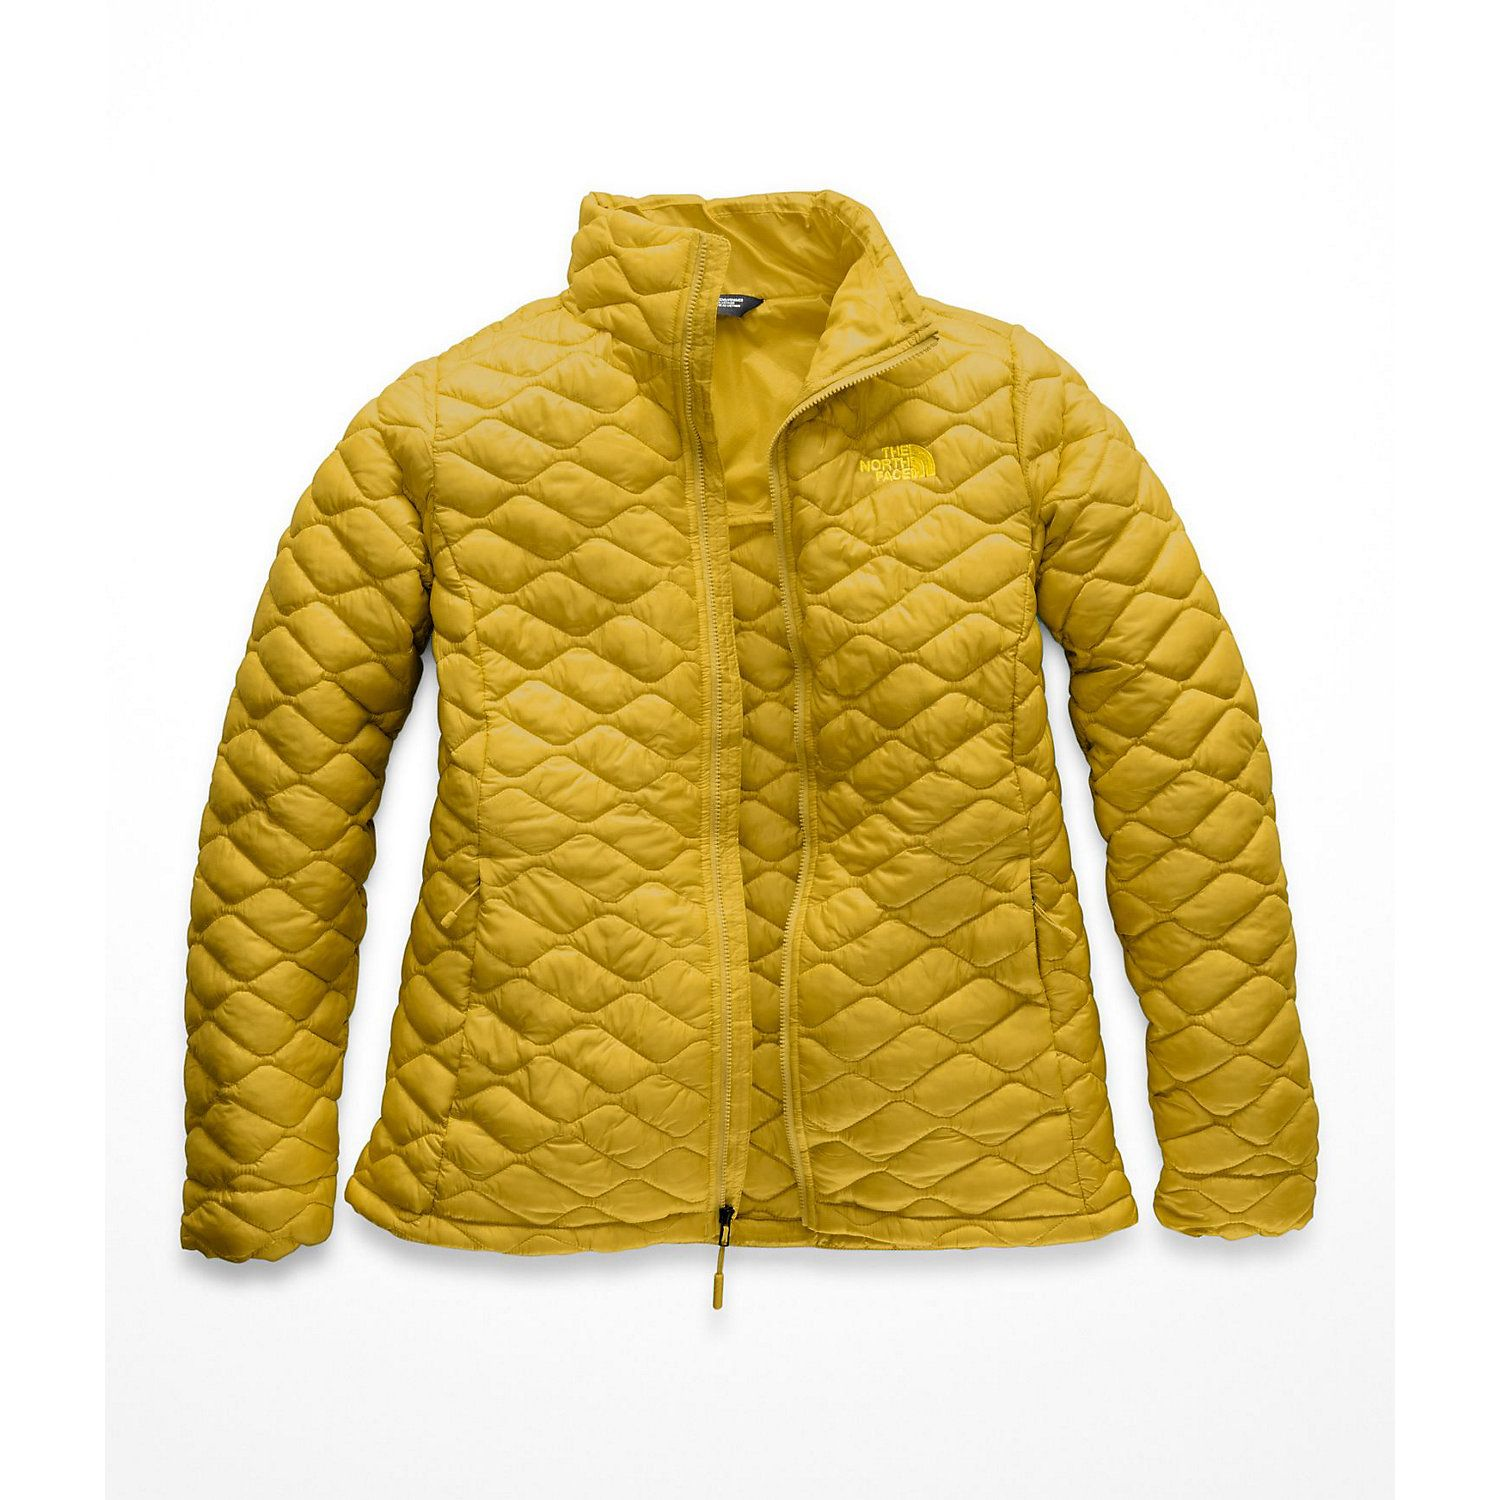 The North Face Women s ThermoBall Jacket - Moosejaw a5b34d3ac